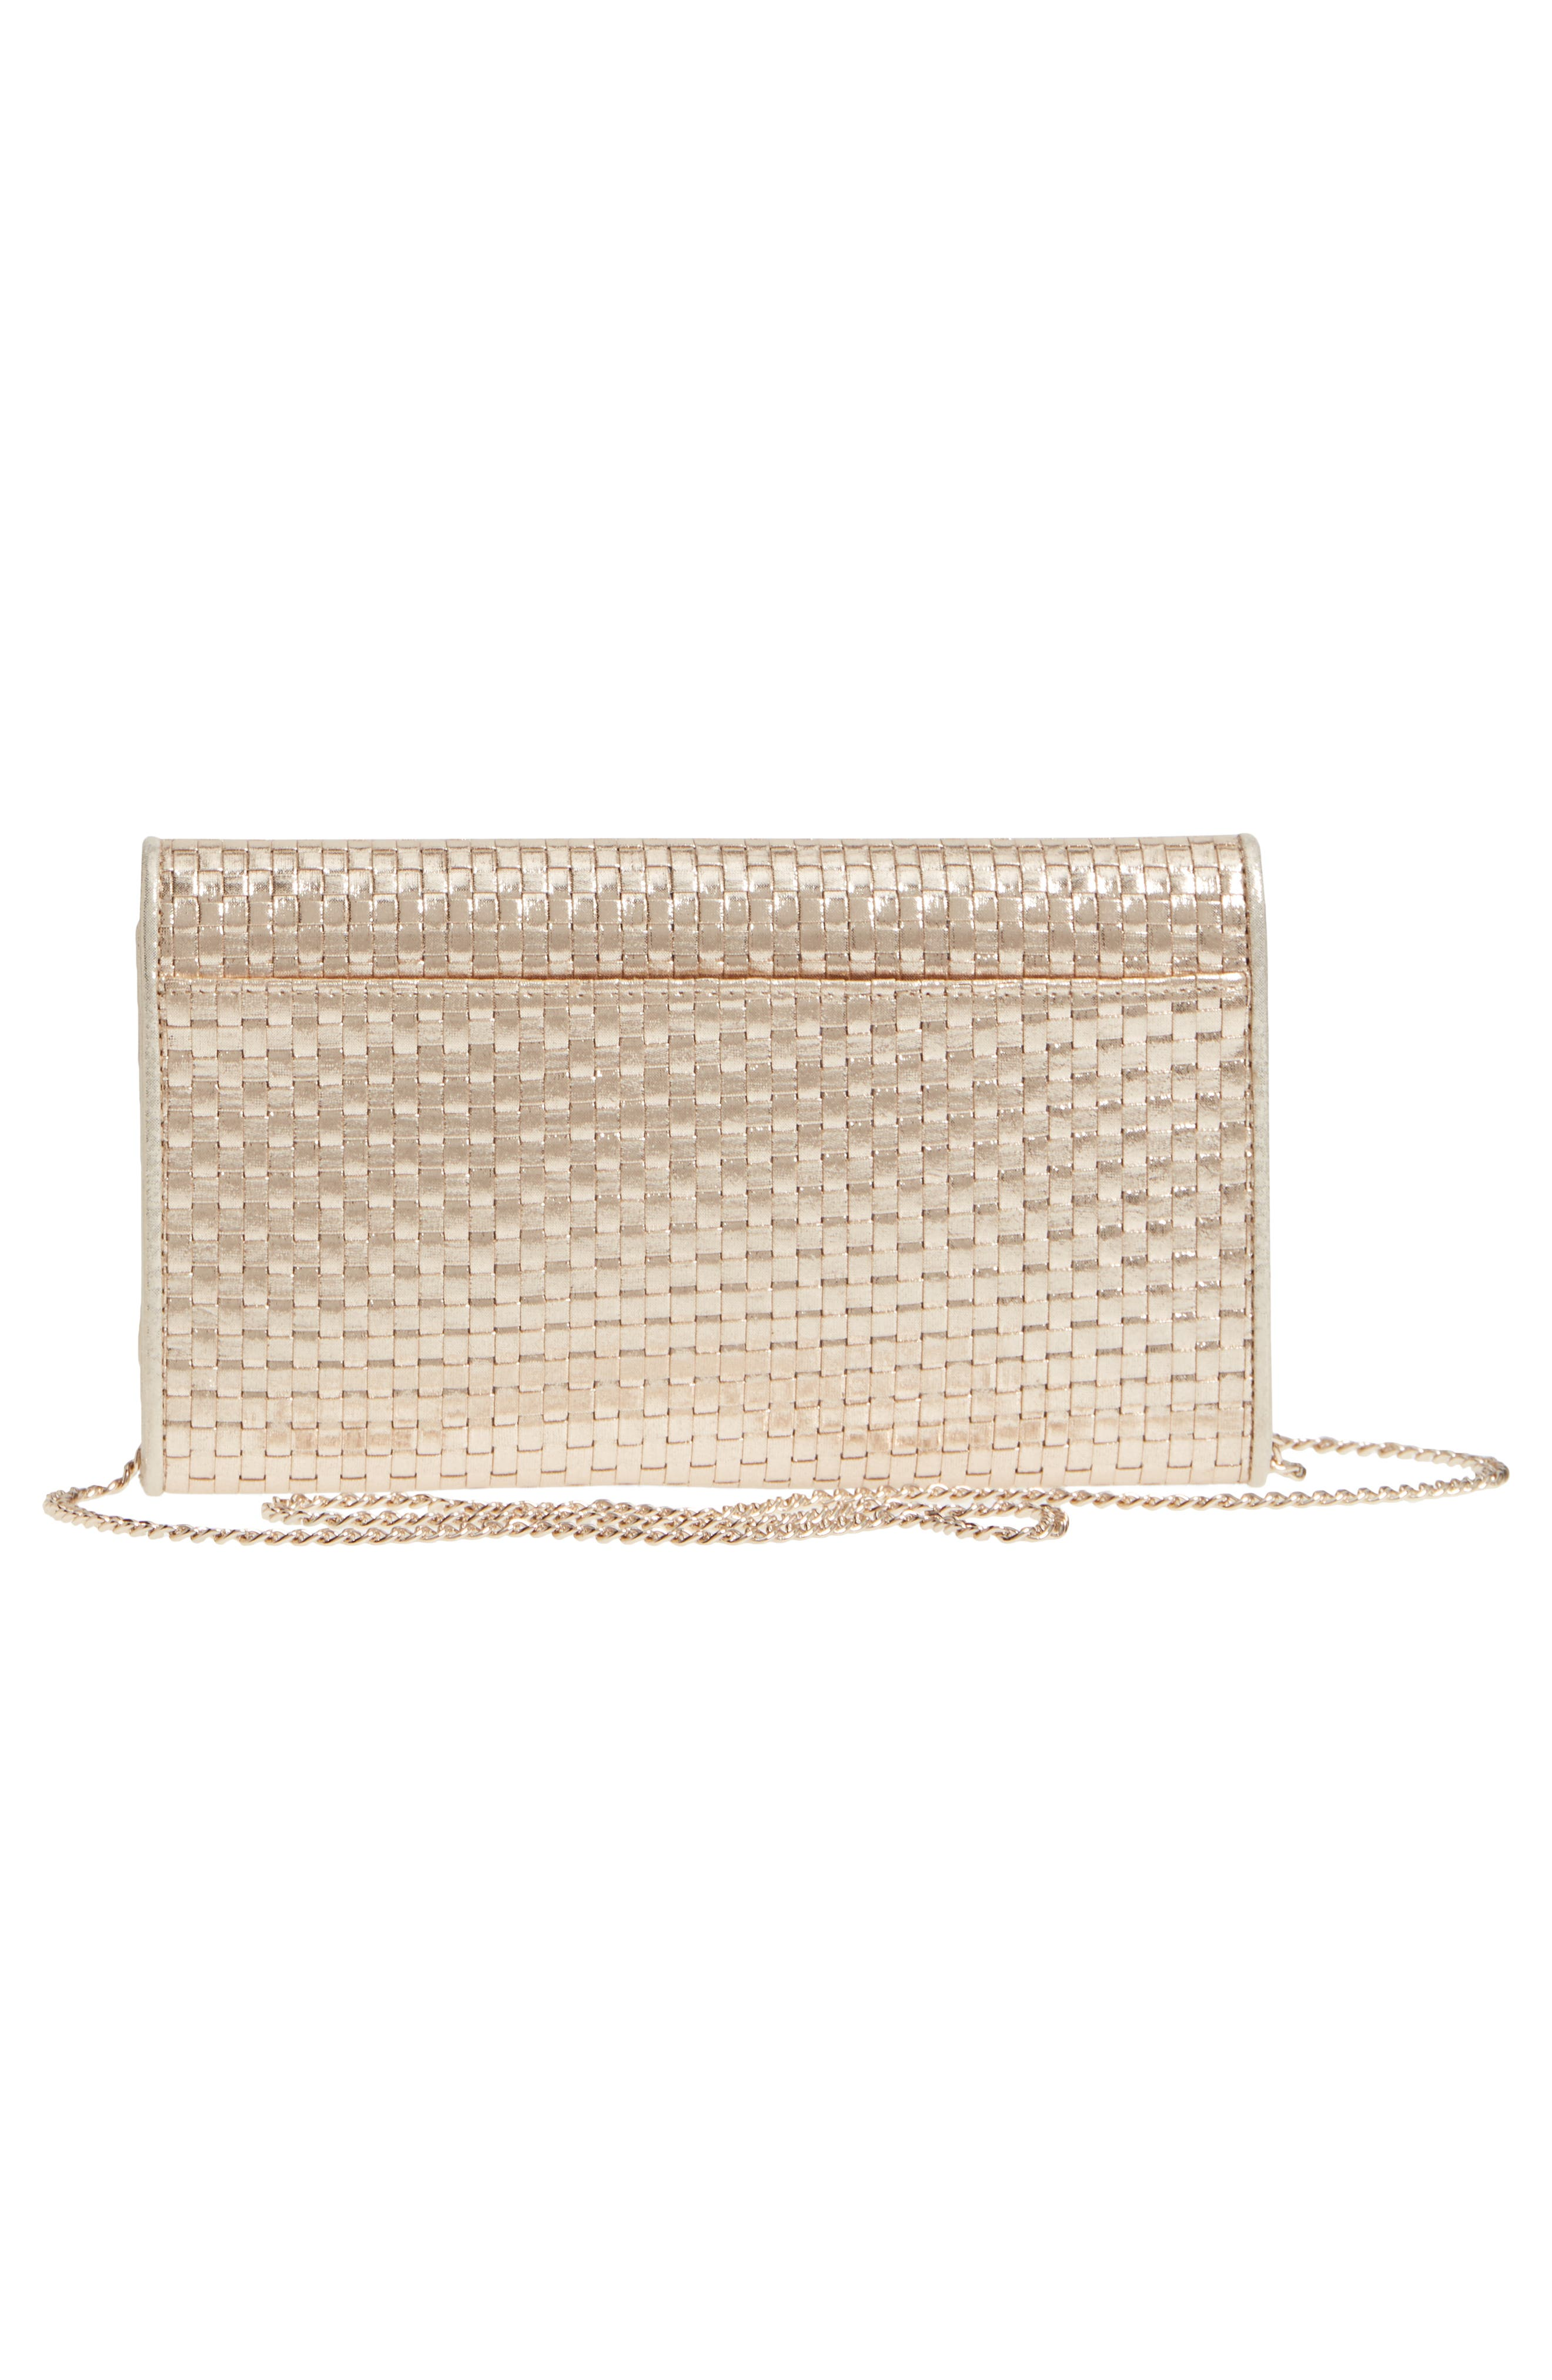 Alternate Image 3  - Nordstrom Woven Faux Leather Metallic Clutch